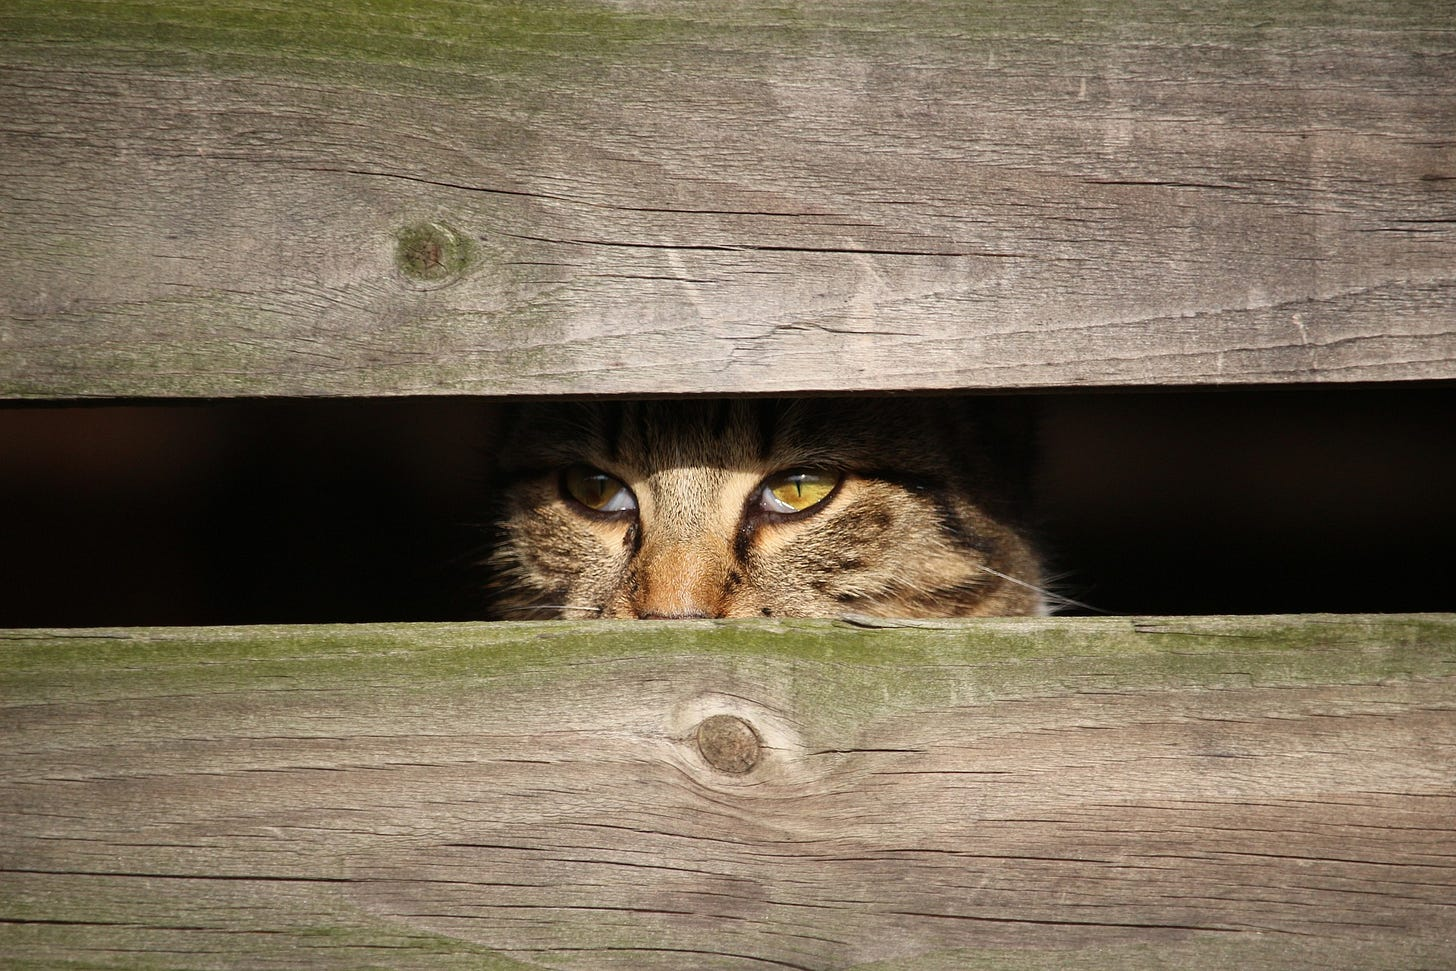 Cat peering out from between two boards.